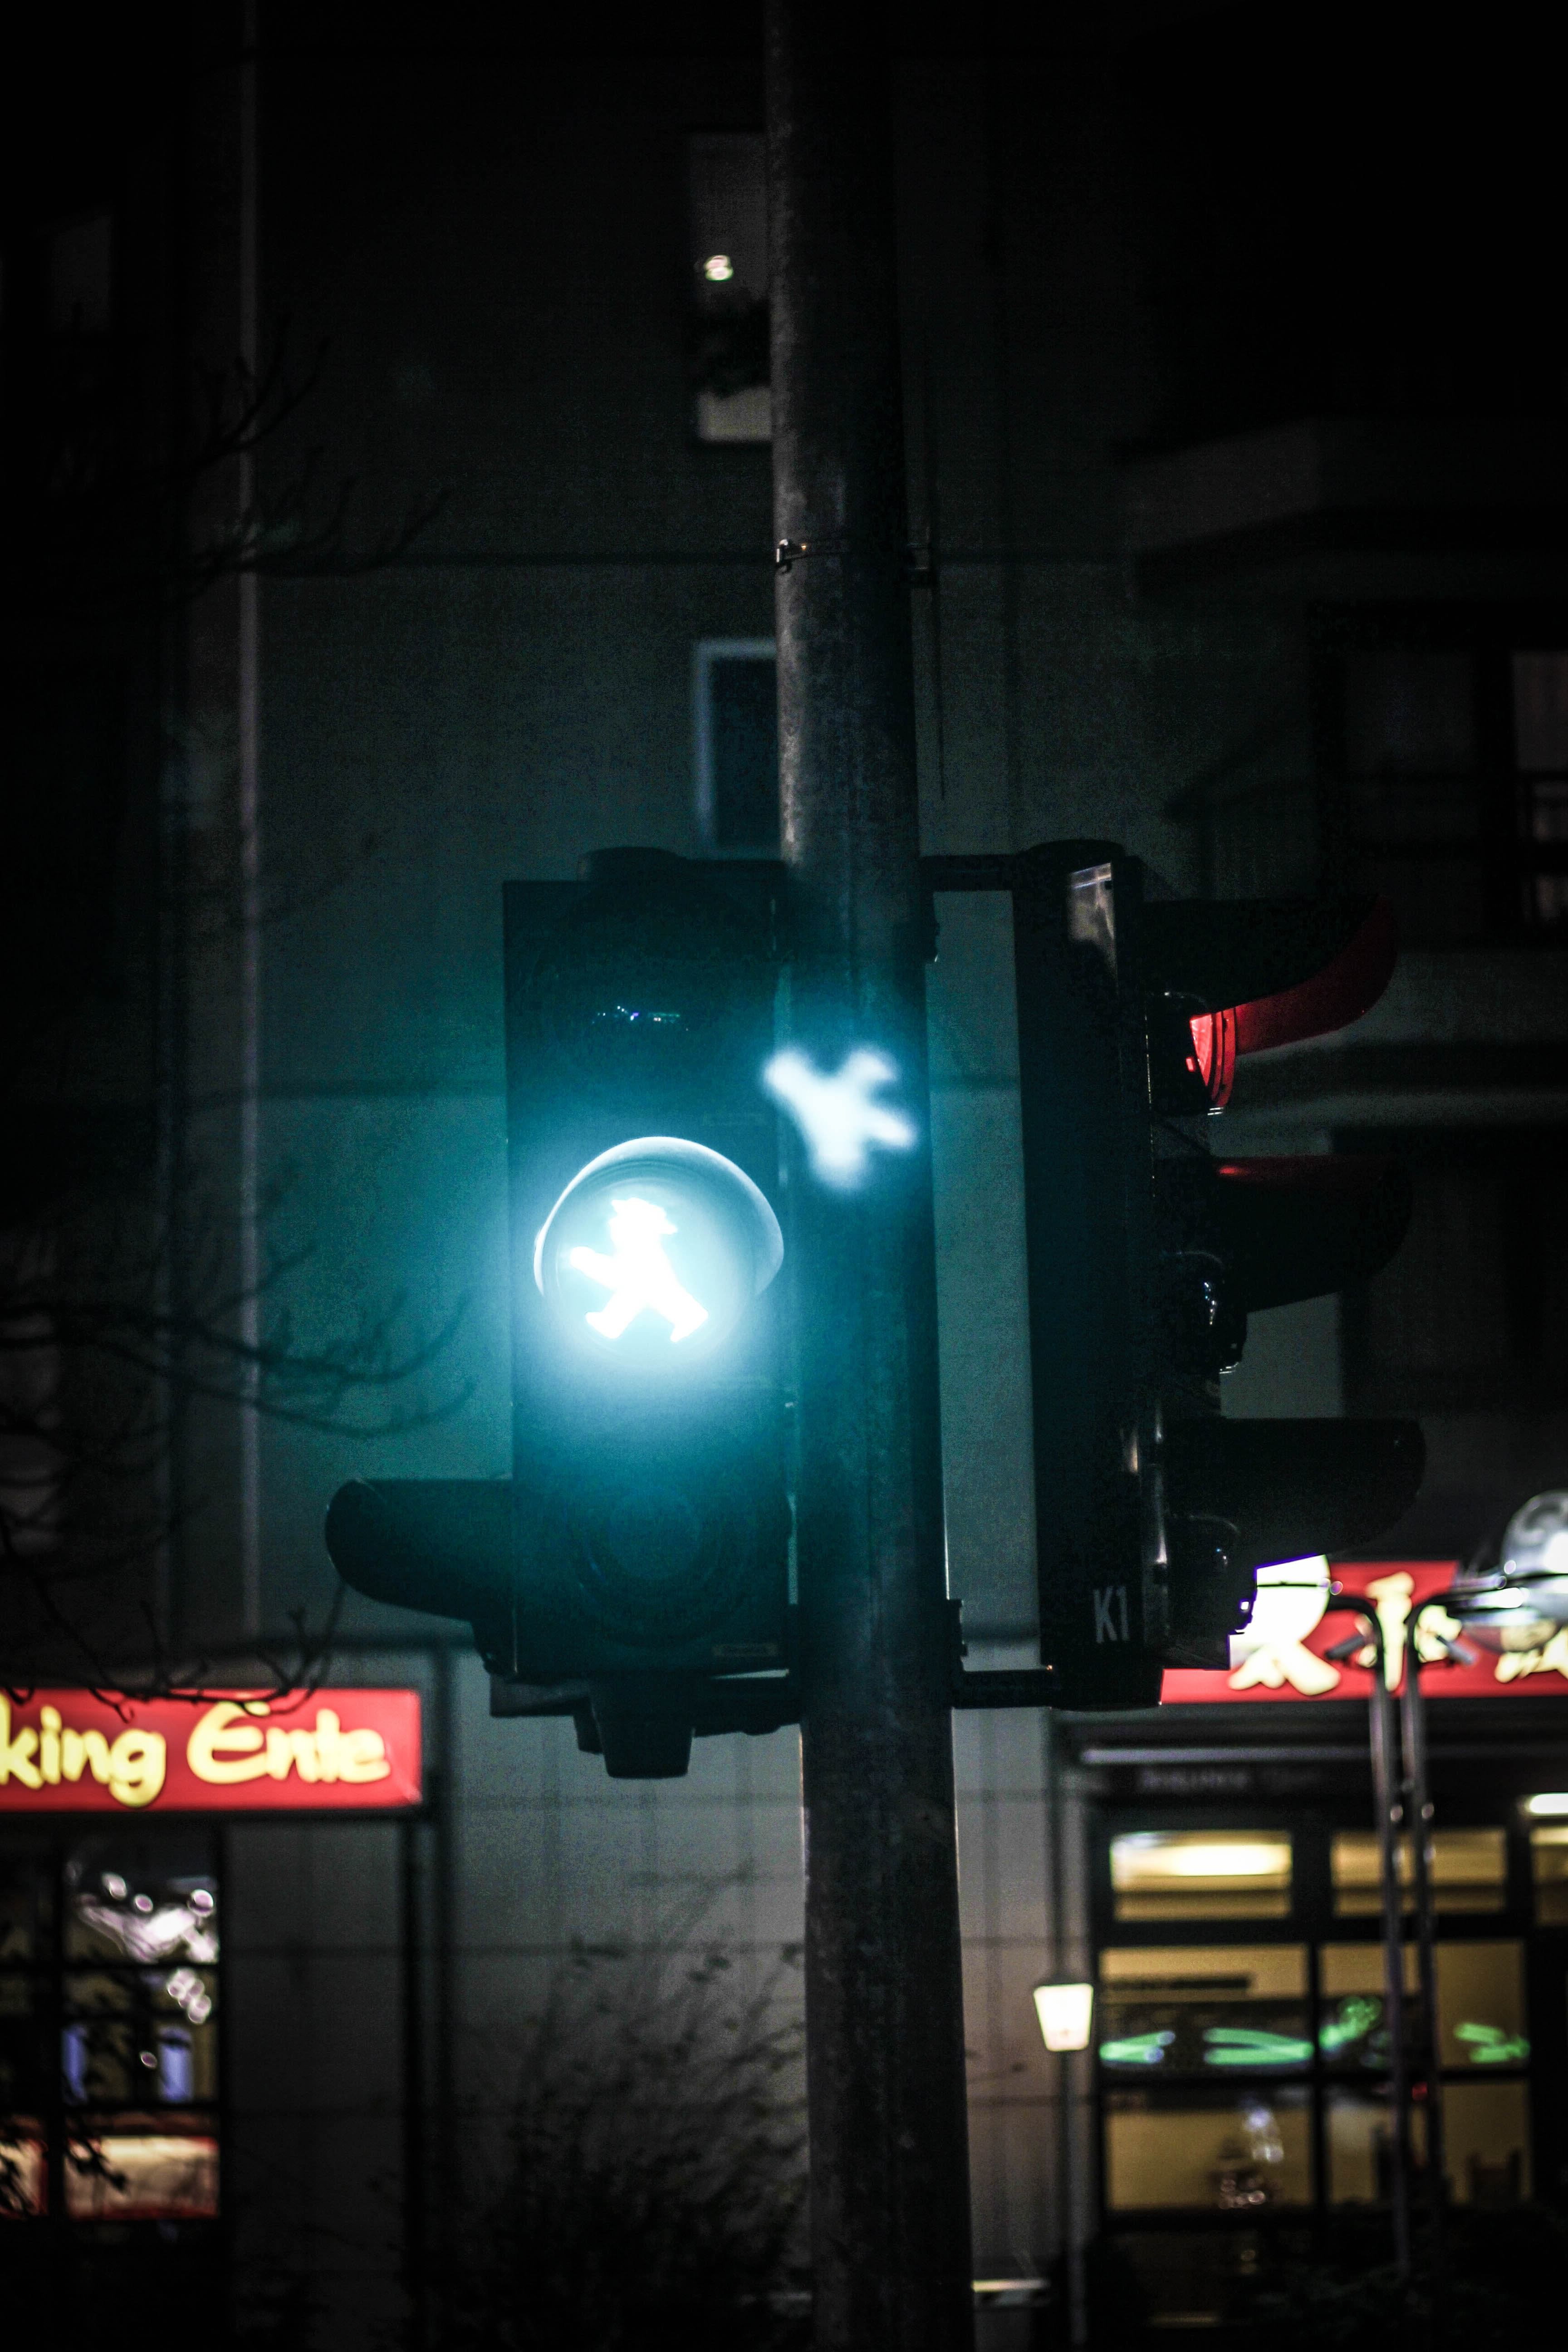 streetlight showing go sign during nighttime